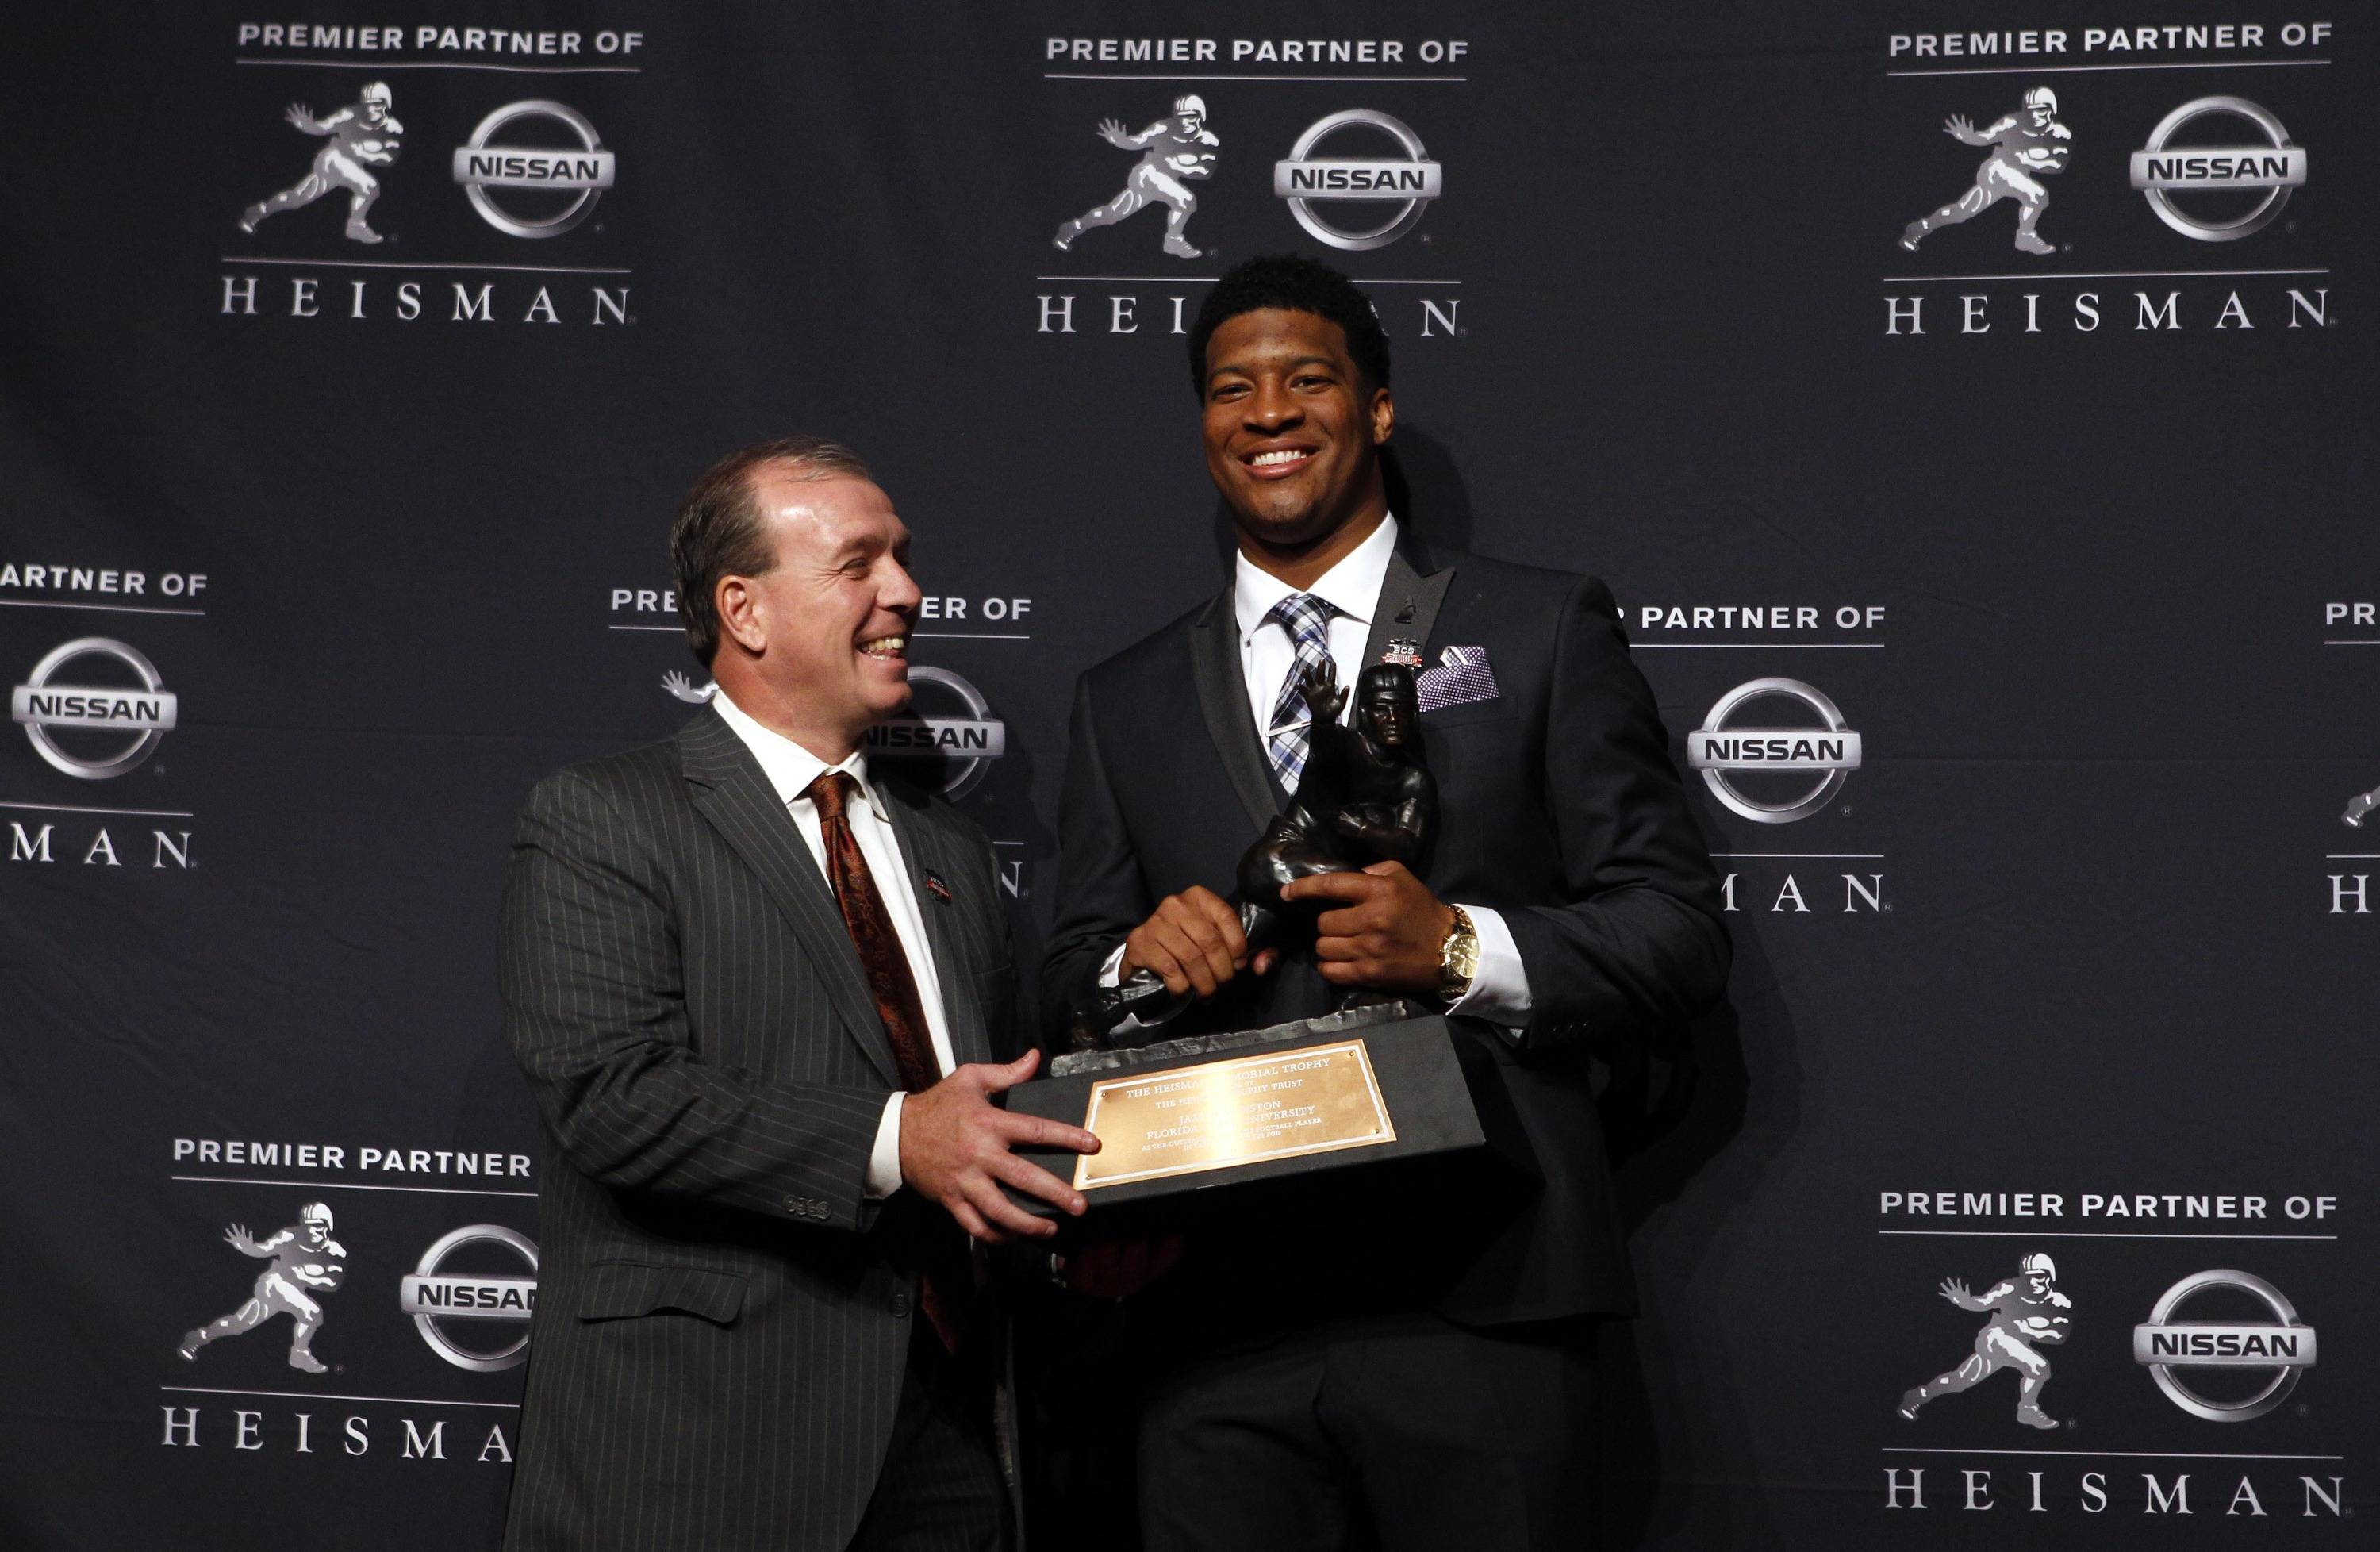 Dec 14, 2013; New York, NY, USA; Seminoles quarterback Jameis Winston poses with head coach Jimbo Fisher after being awarded the 2013 Heisman Trophy. Adam Hunger-USA TODAY Sports